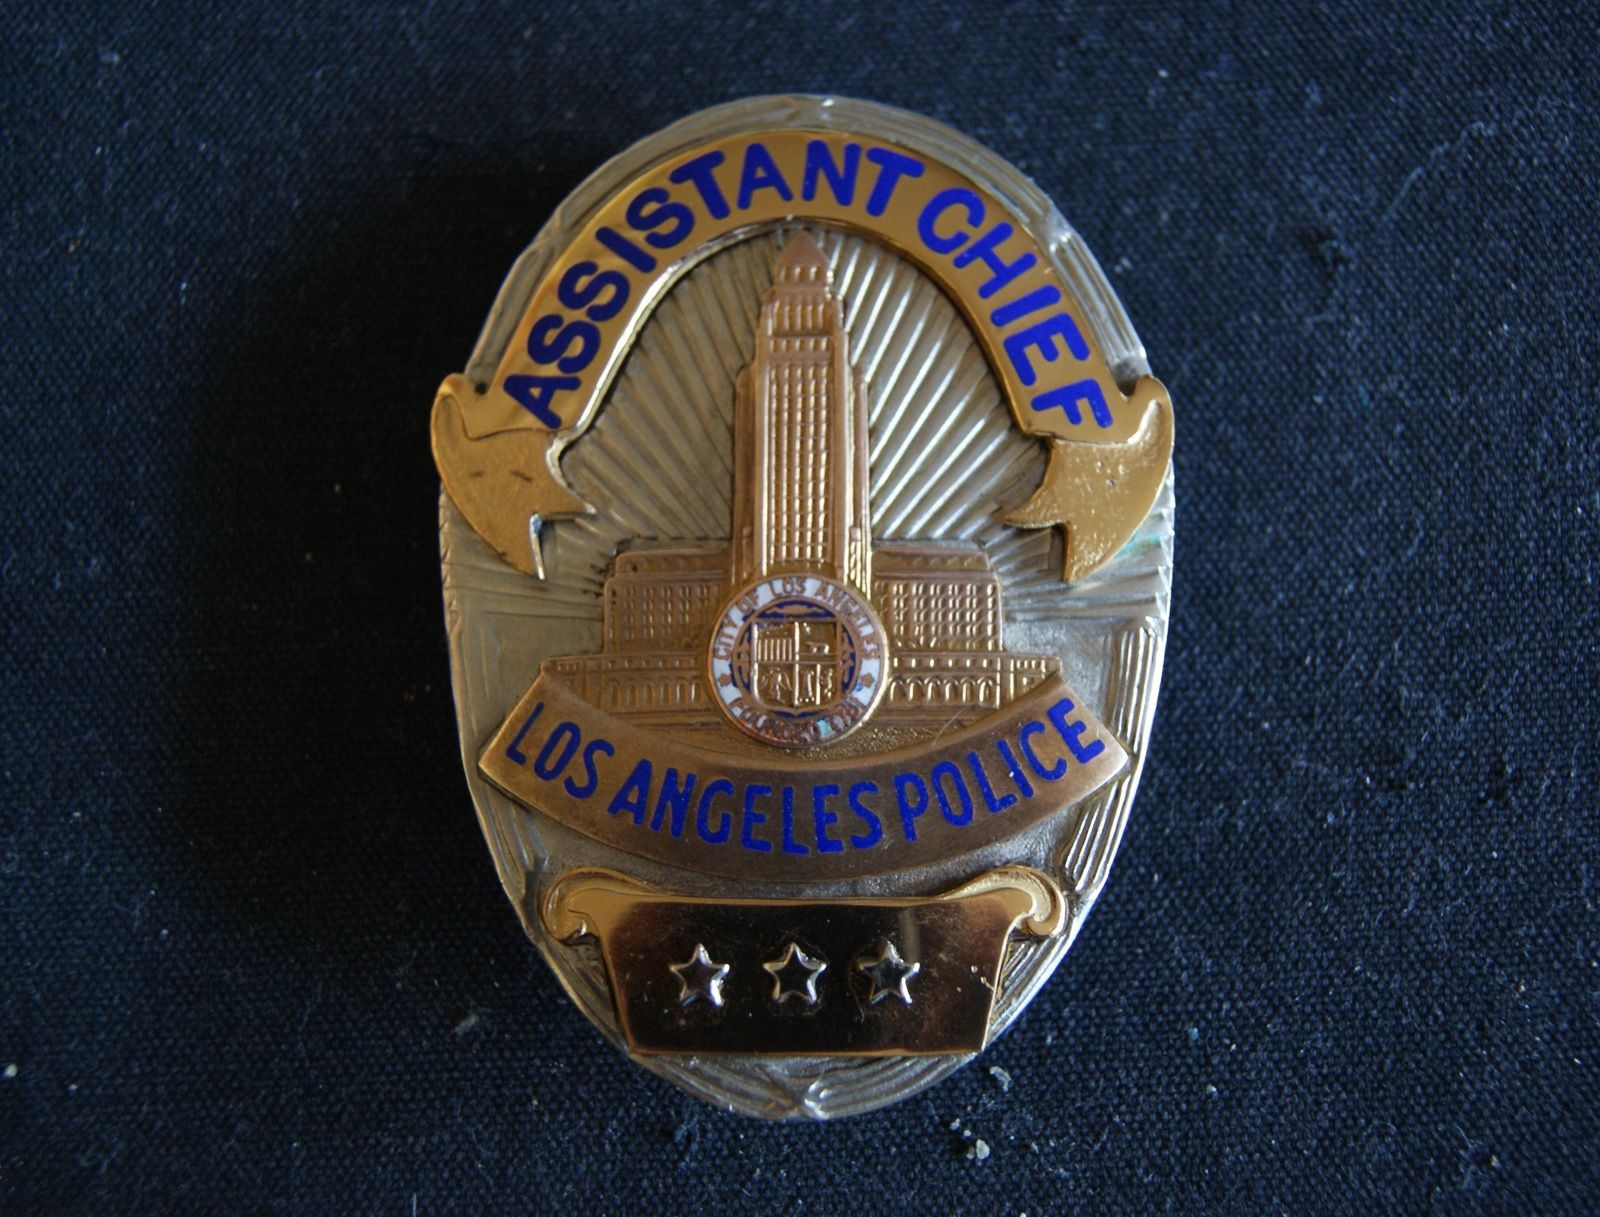 Los Angeles Police Scarce Police Badge Retired Assistant Chief Badge Hmk Entenmann Rovin Police Badge Police Badges For Sale Los Angeles Police Department